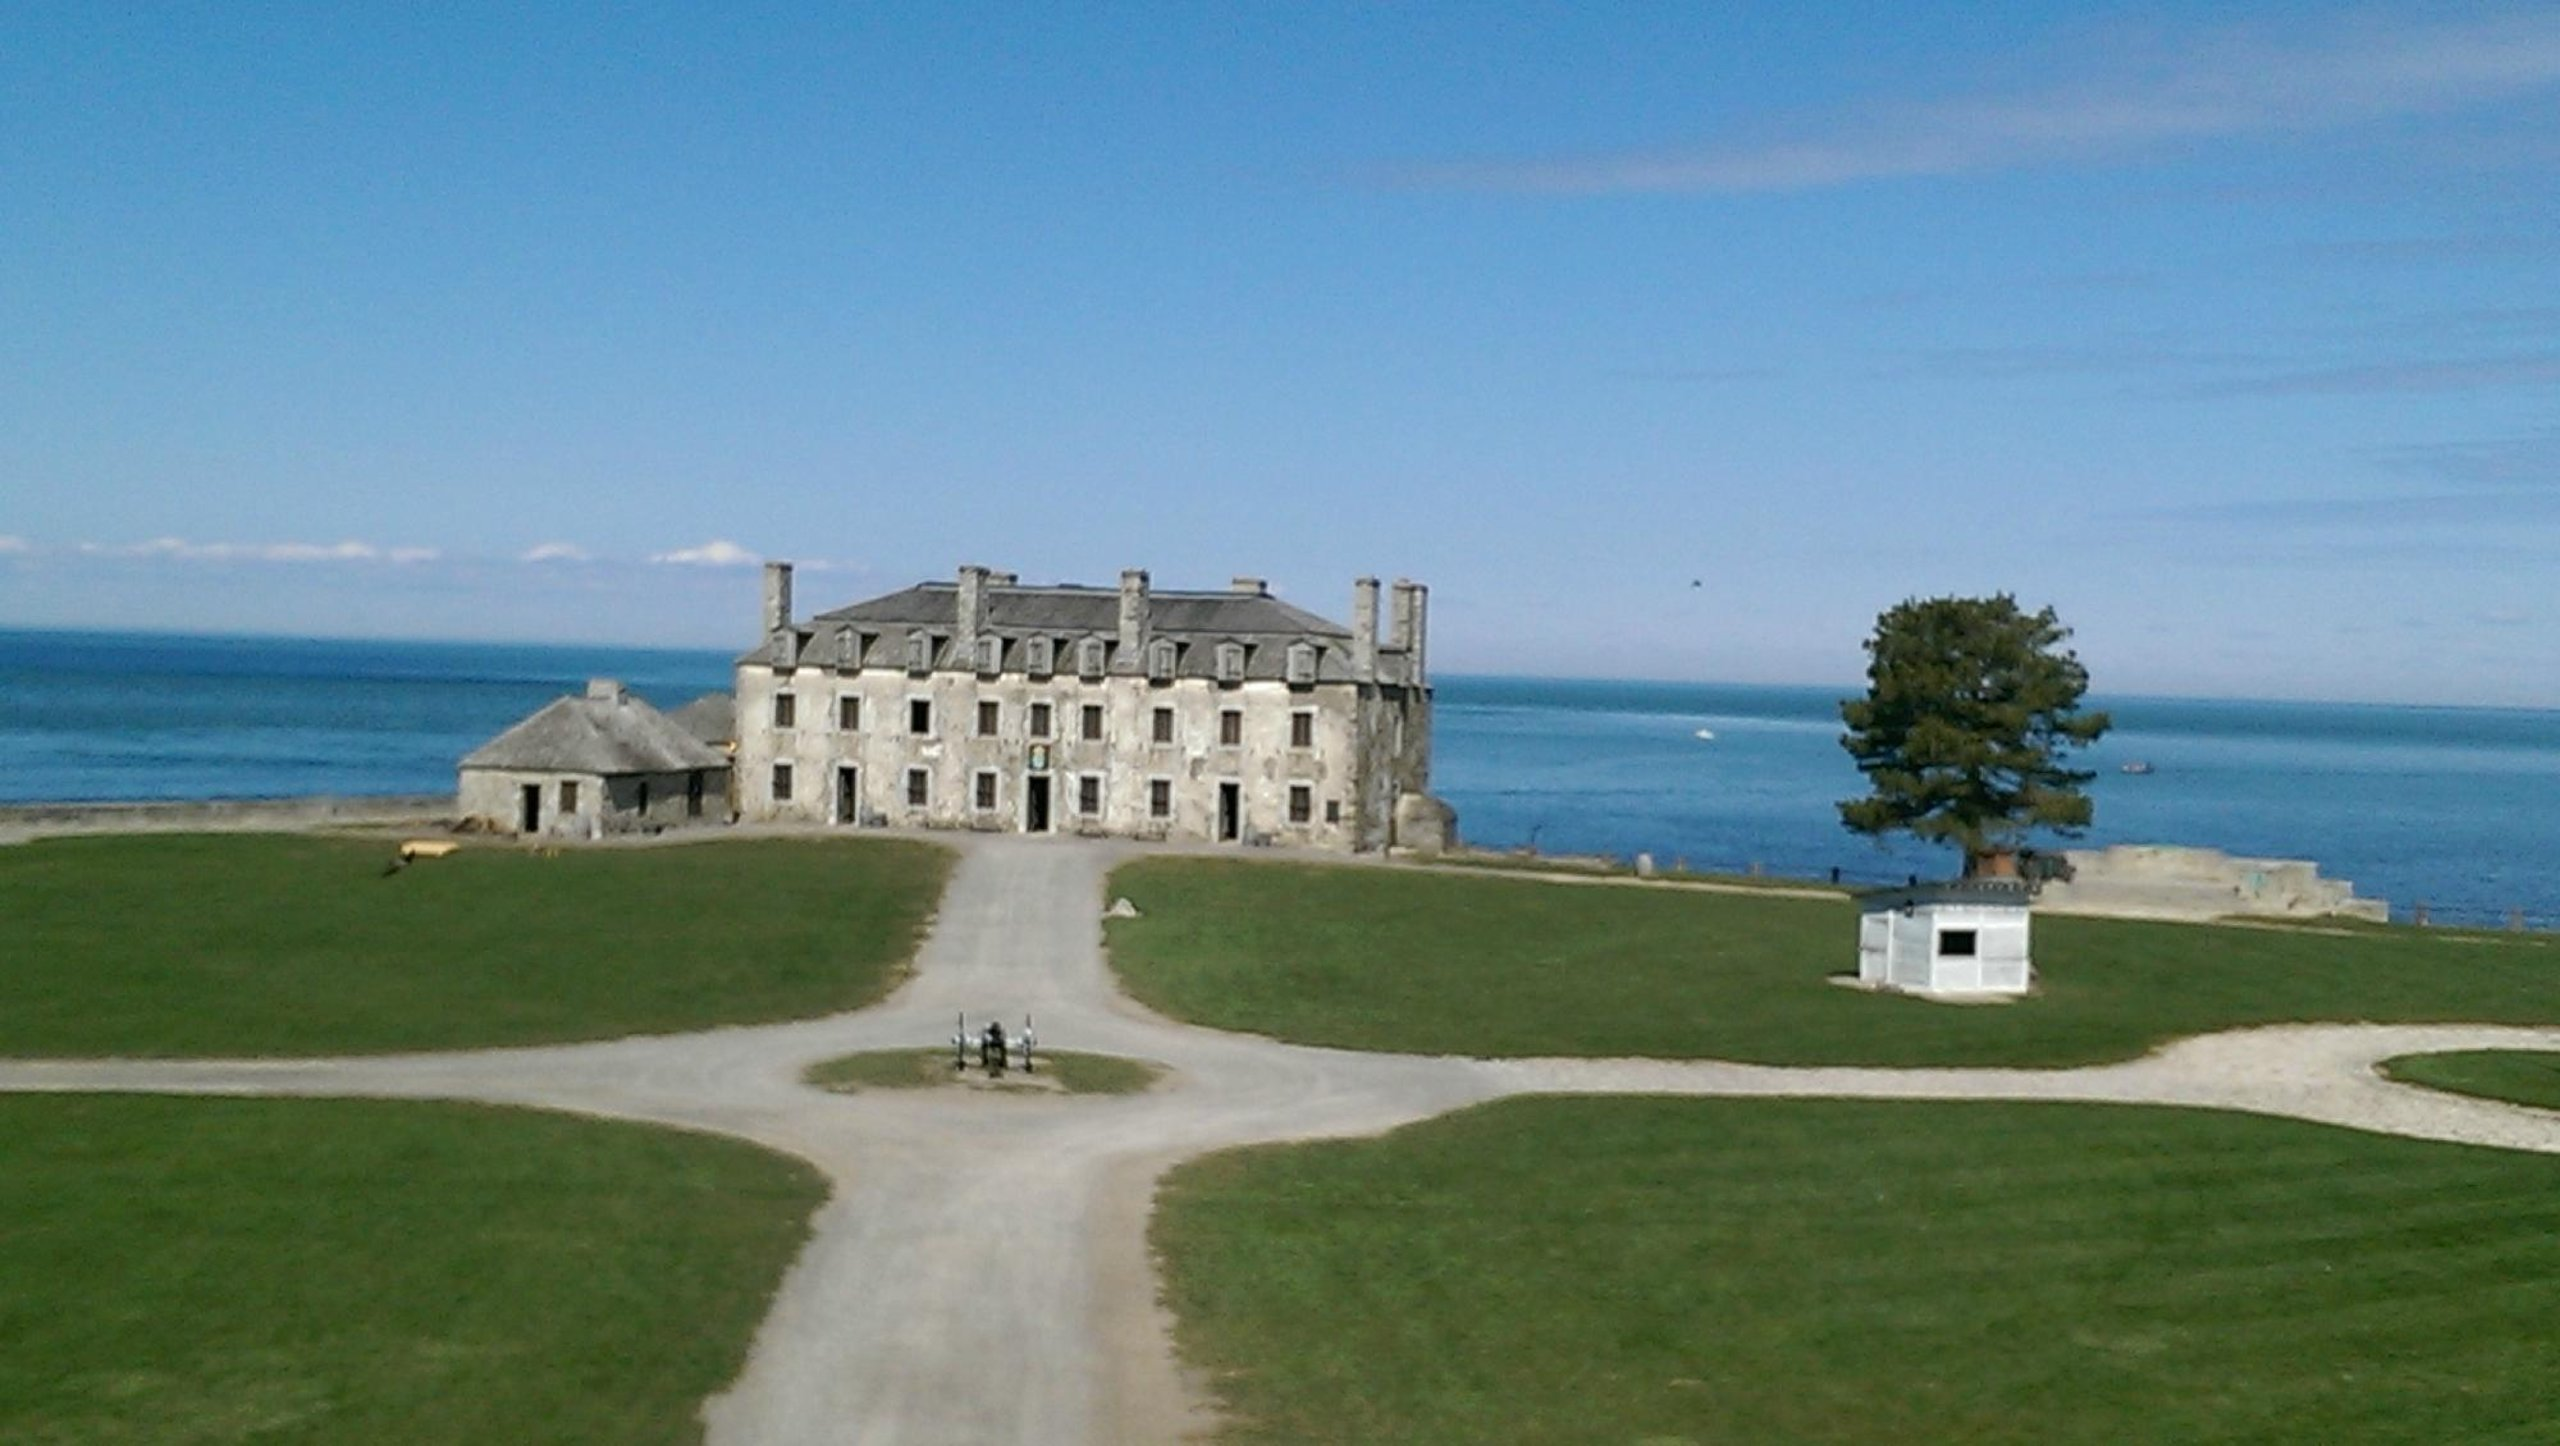 Old Fort Niagara (Youngstown): UPDATED 2021 All You Need to Know Before You Go (with PHOTOS) - Tripadvisor